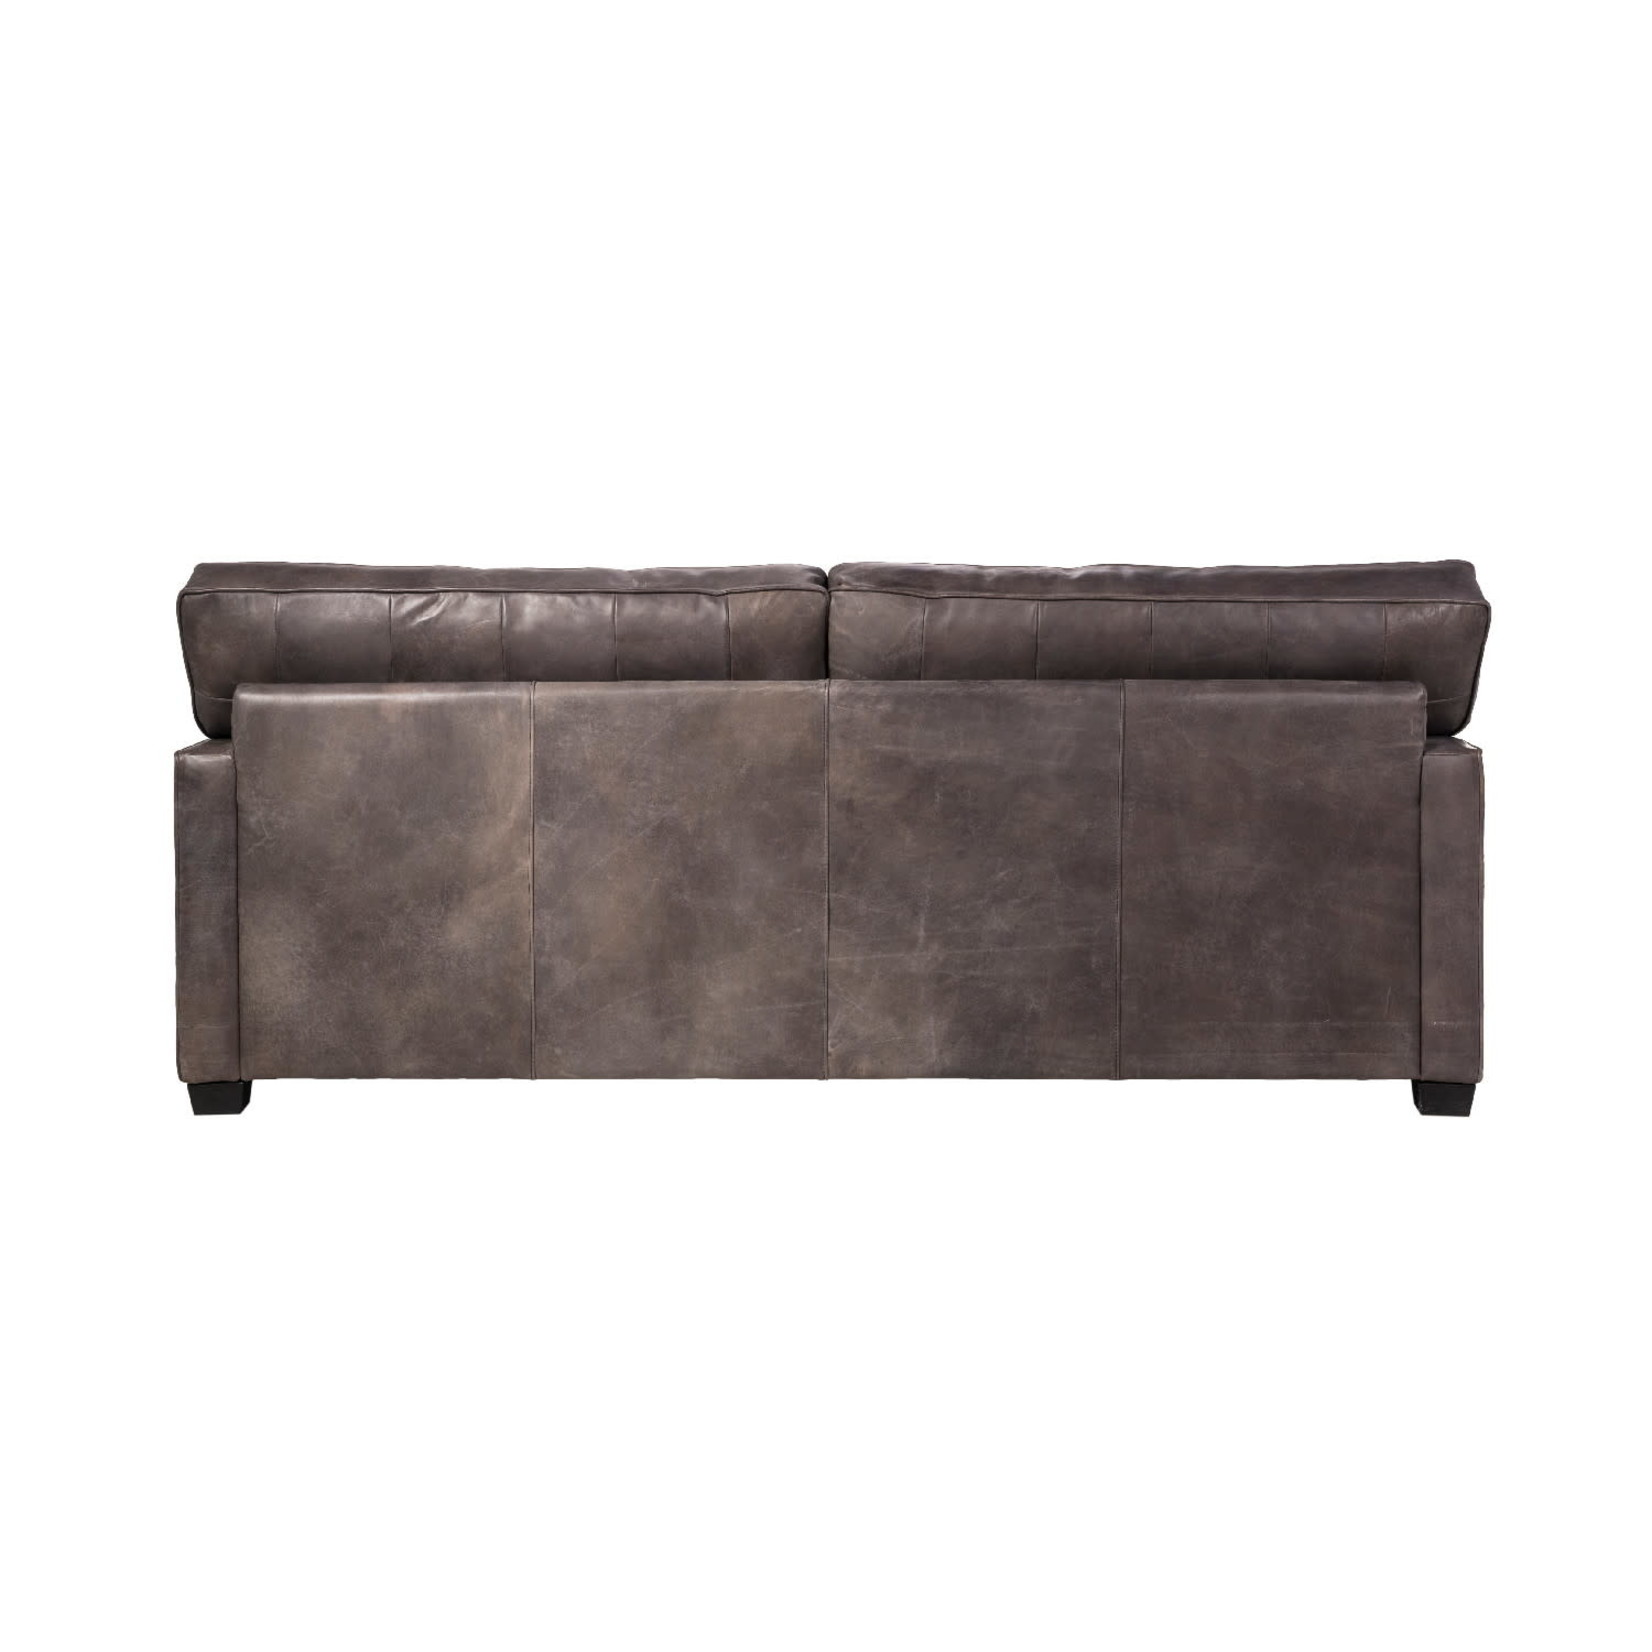 TIMOTHY OULTON VISCOUNT WILLIAM SOFA 3 SEATER